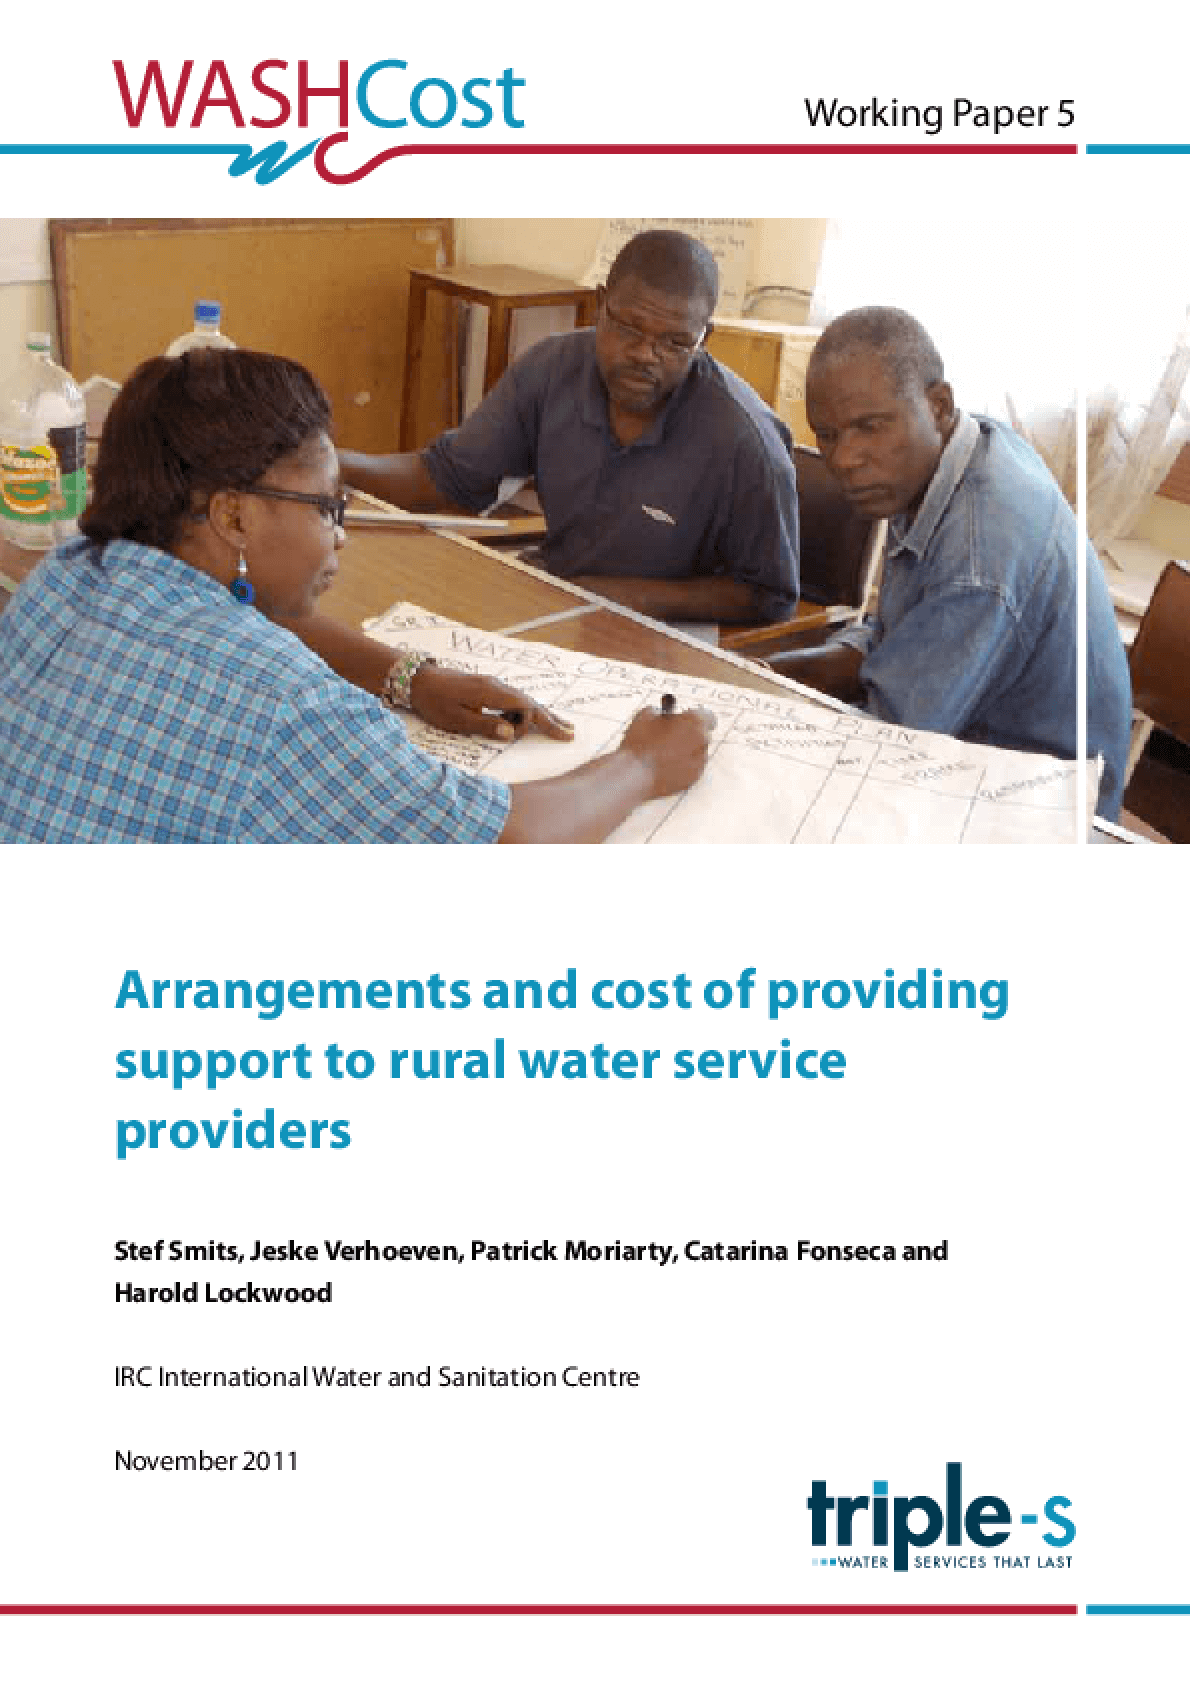 Arrangements and Cost of Providing Support to Rural Water Service Providers